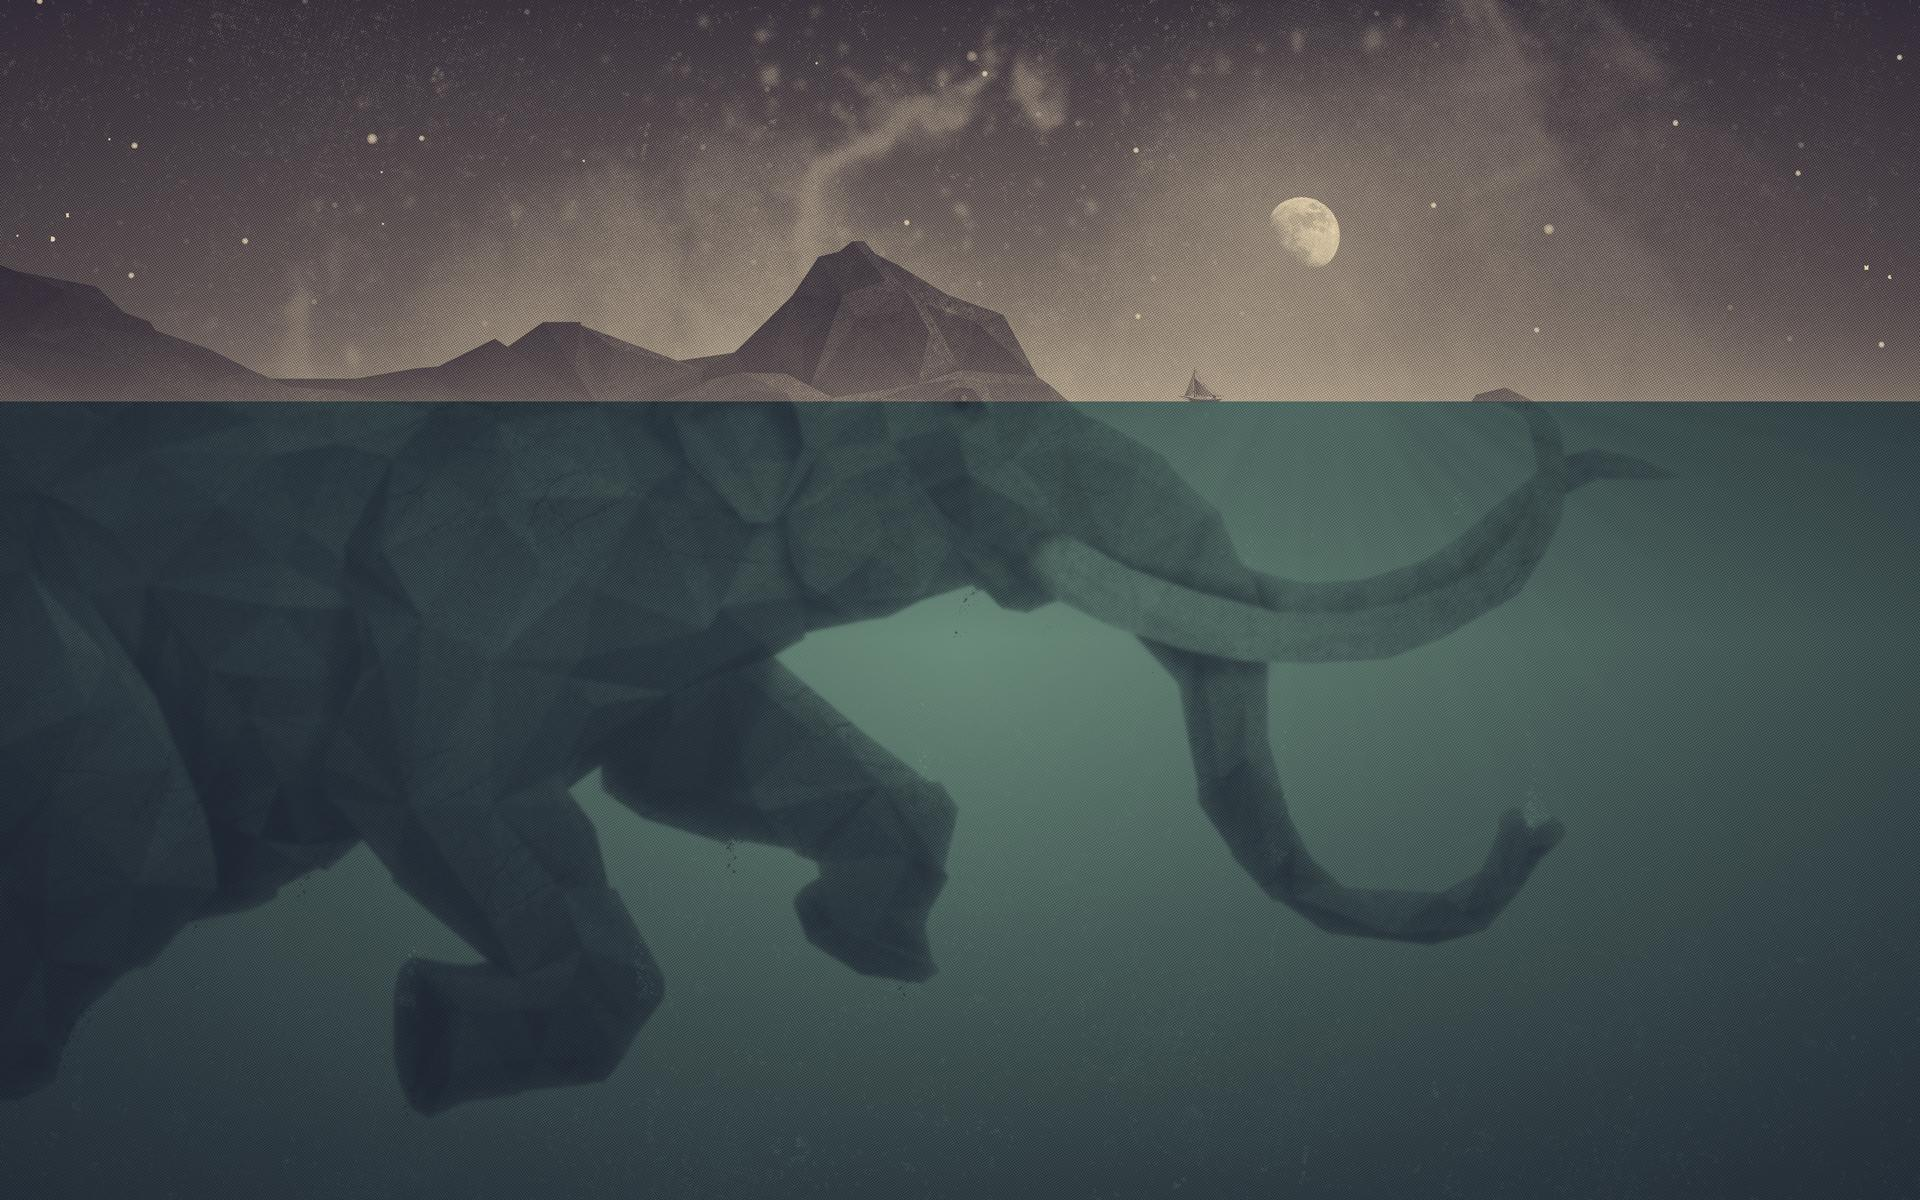 wallpaper_mammoth.jpg (1920×1200)